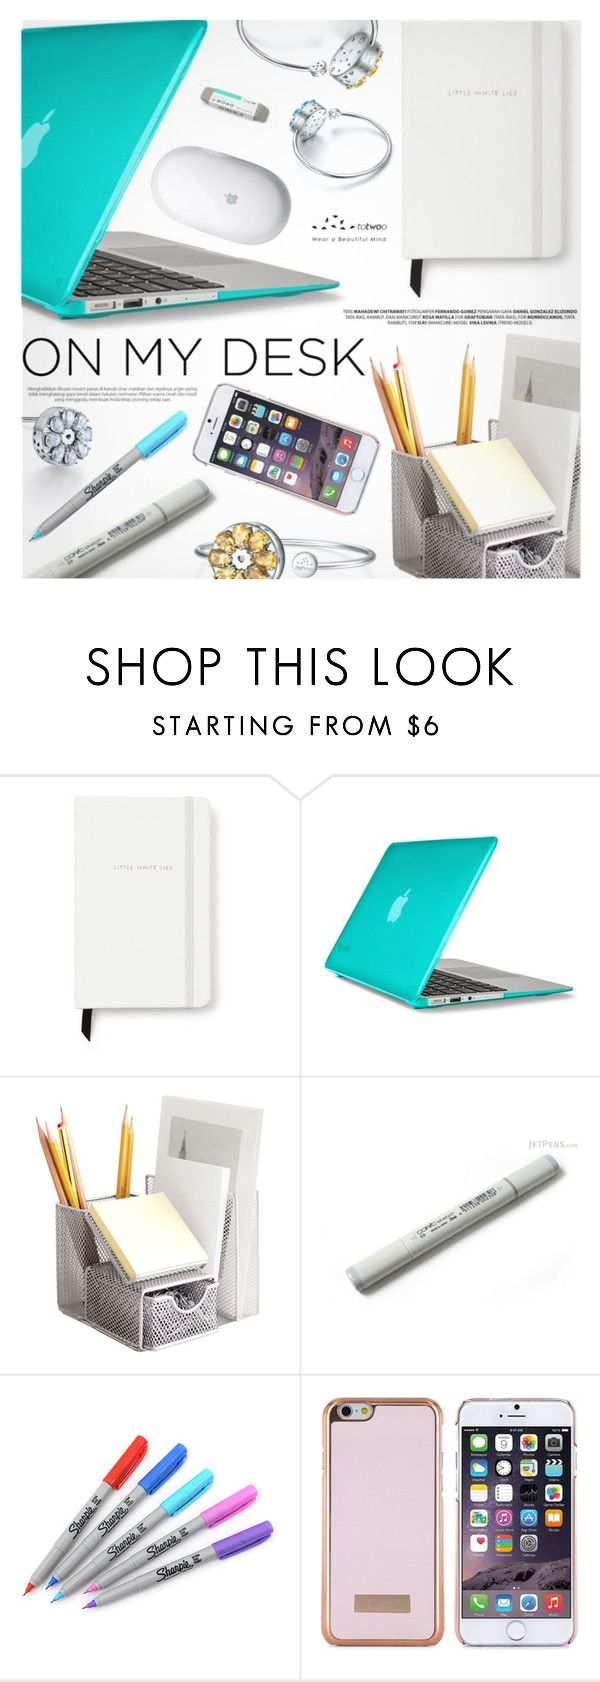 """""""What's on My Desk?"""" by totwoo ❤ liked on Polyvore featuring interior, interiors, interior design, home, home decor, interior decorating, Kate Spade, Speck, Dot & Bo and Sharpie"""